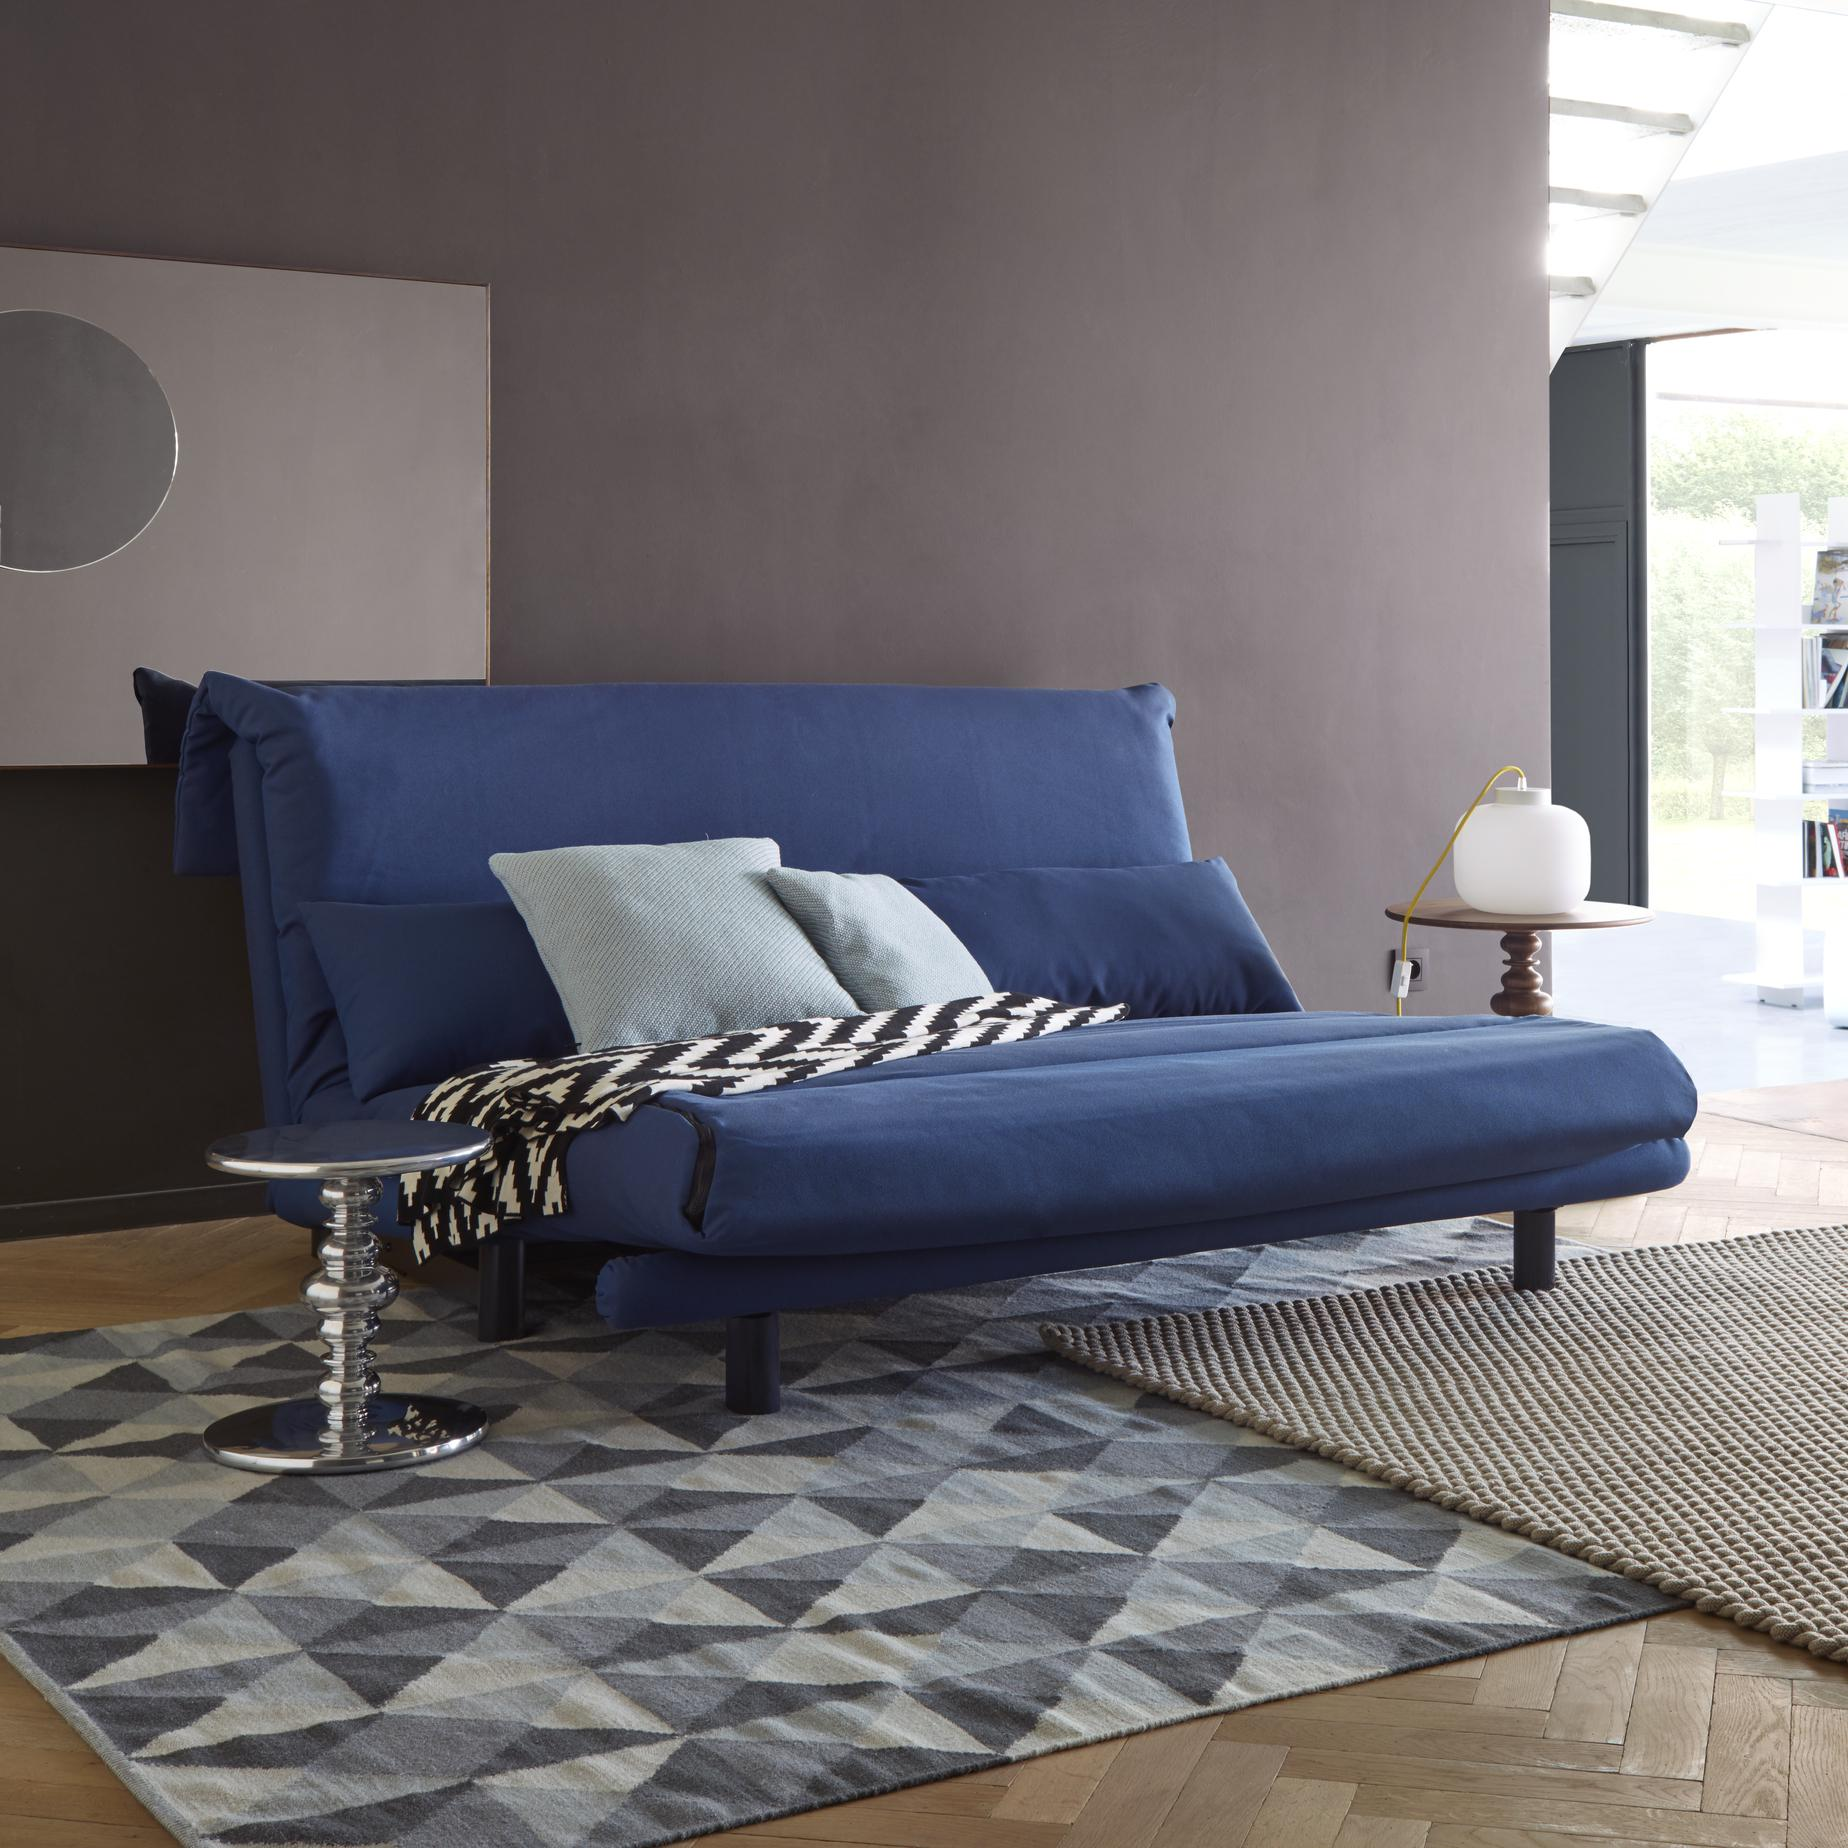 Multy sofa beds from designer claude brisson ligne for Ligne roset multy testbericht